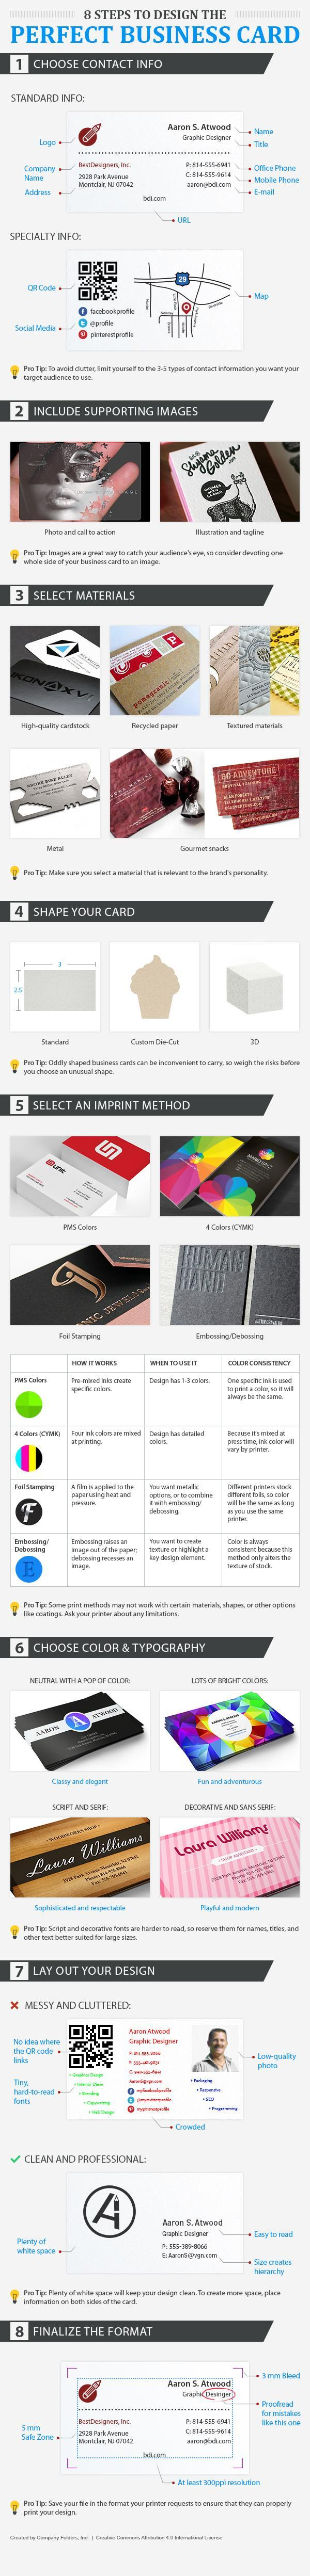 how-to-design-a-professional-business-card